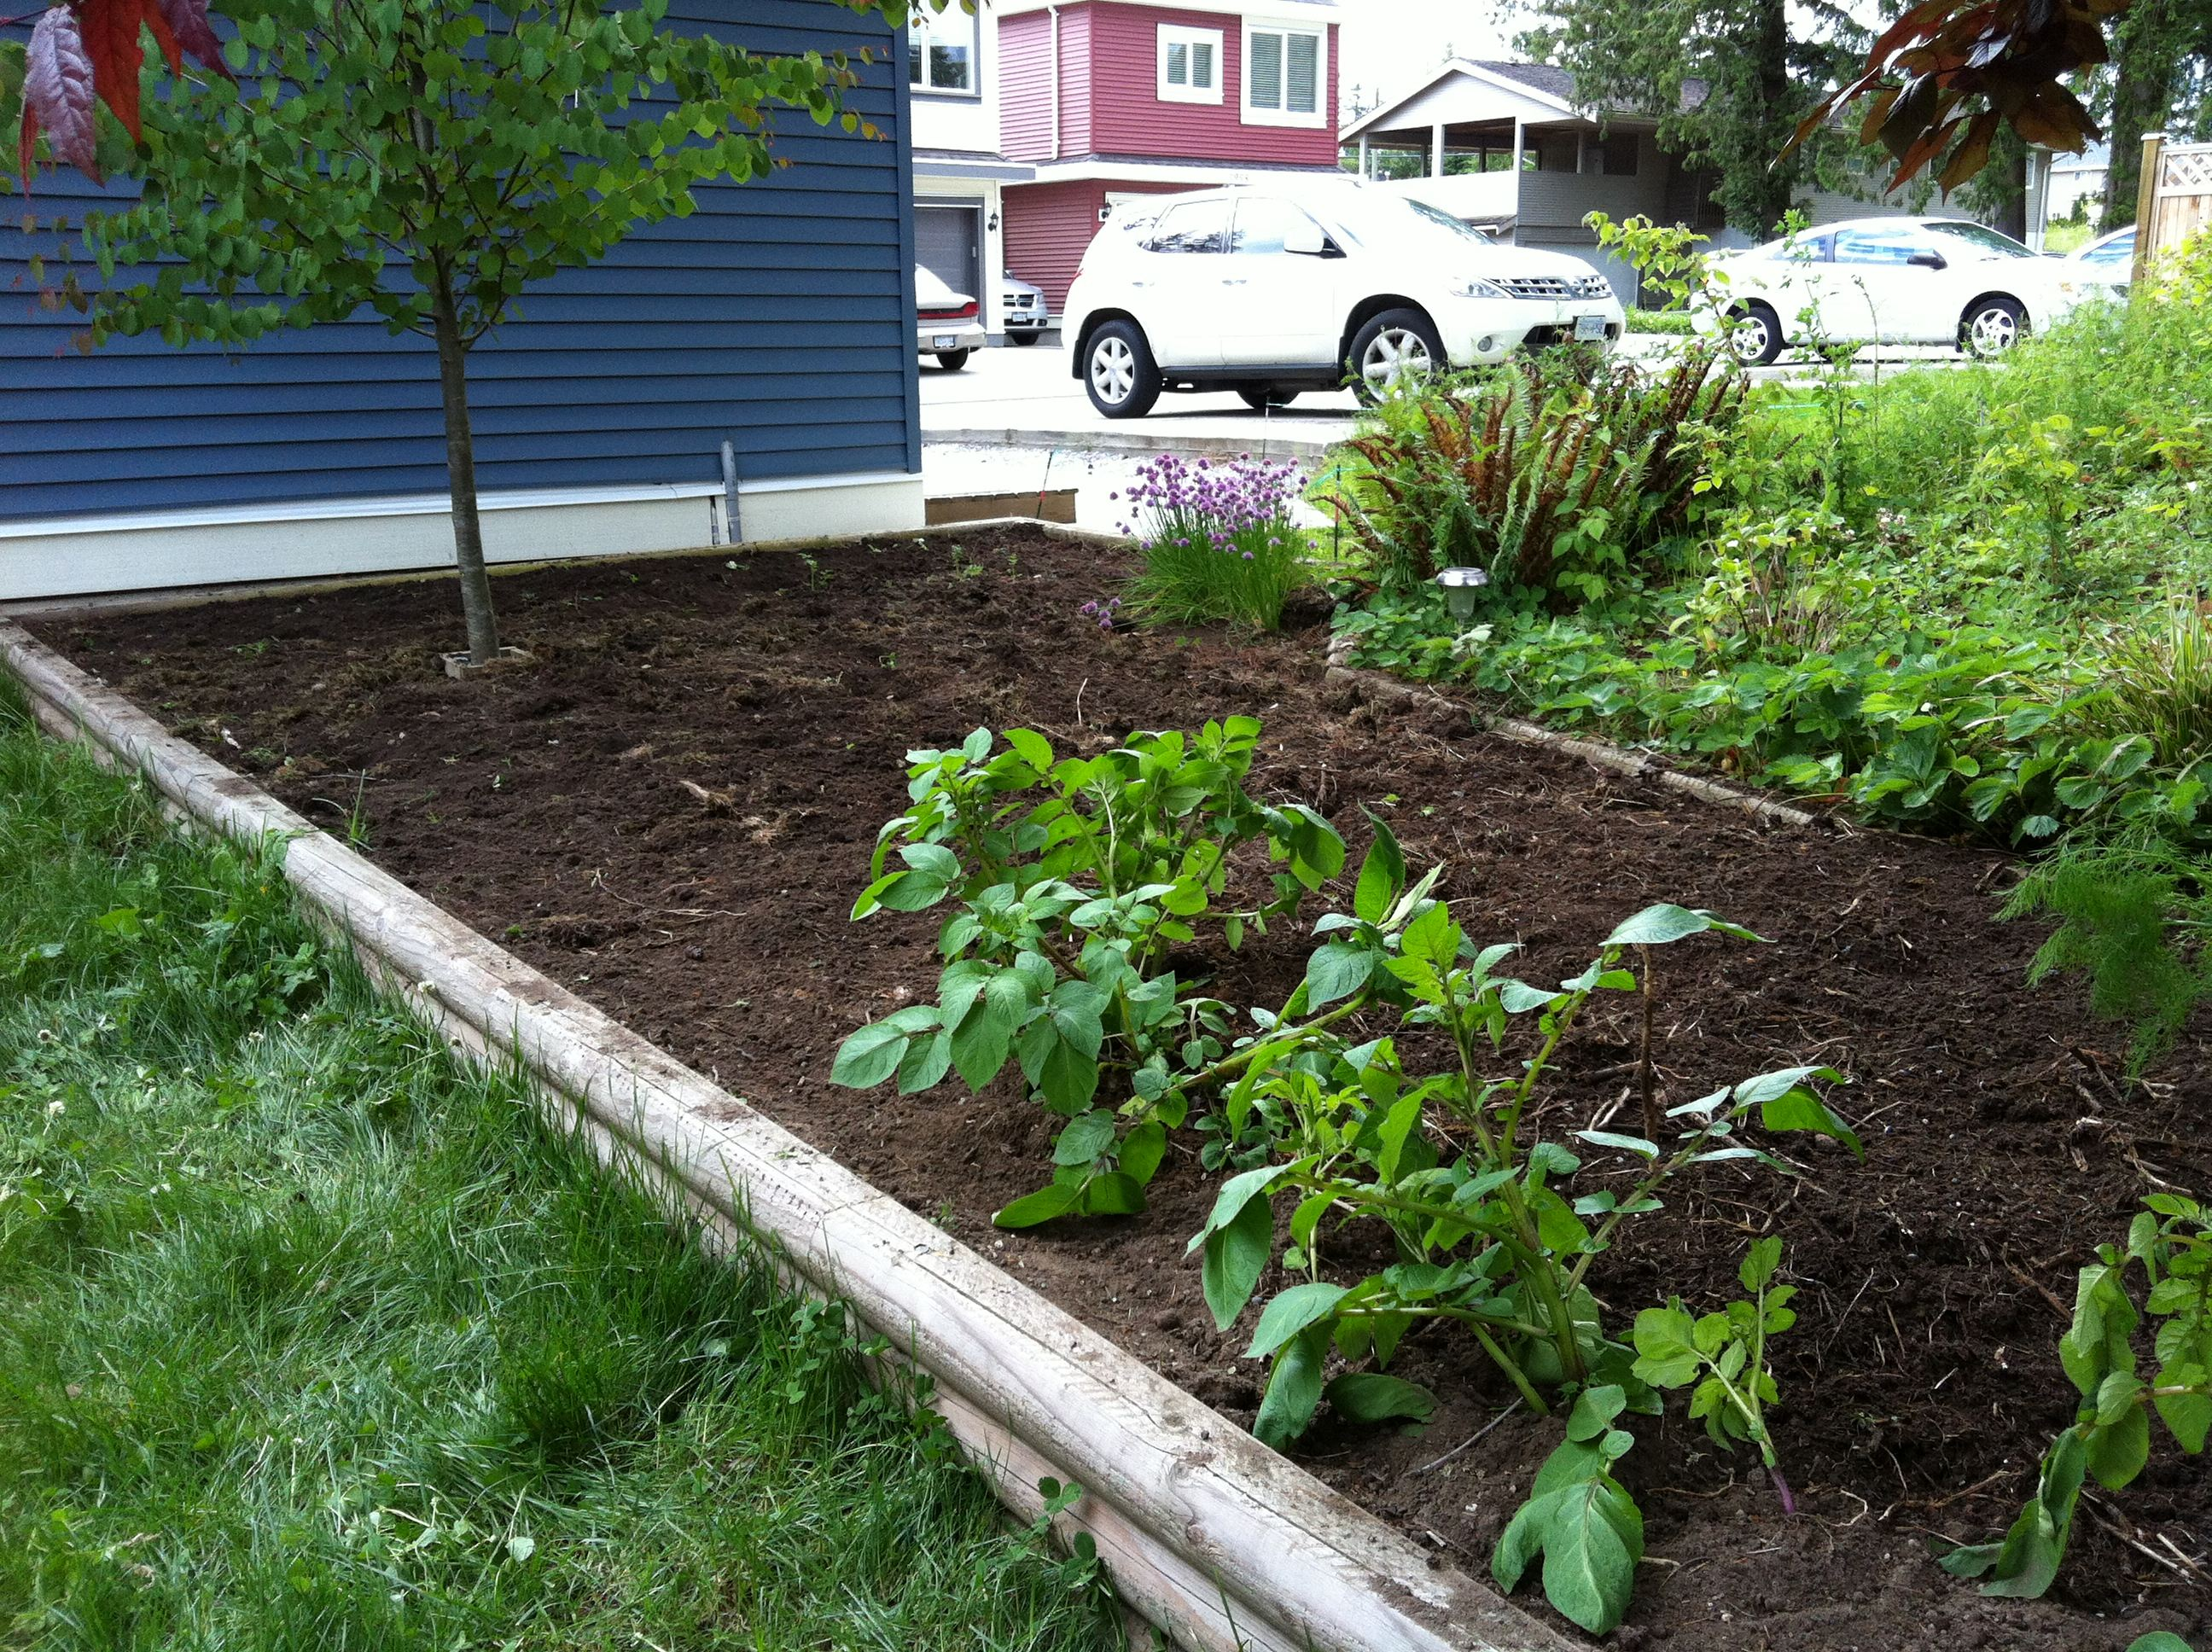 weeded backyard garden - Backyard Vegetable Garden Ideas Pictures